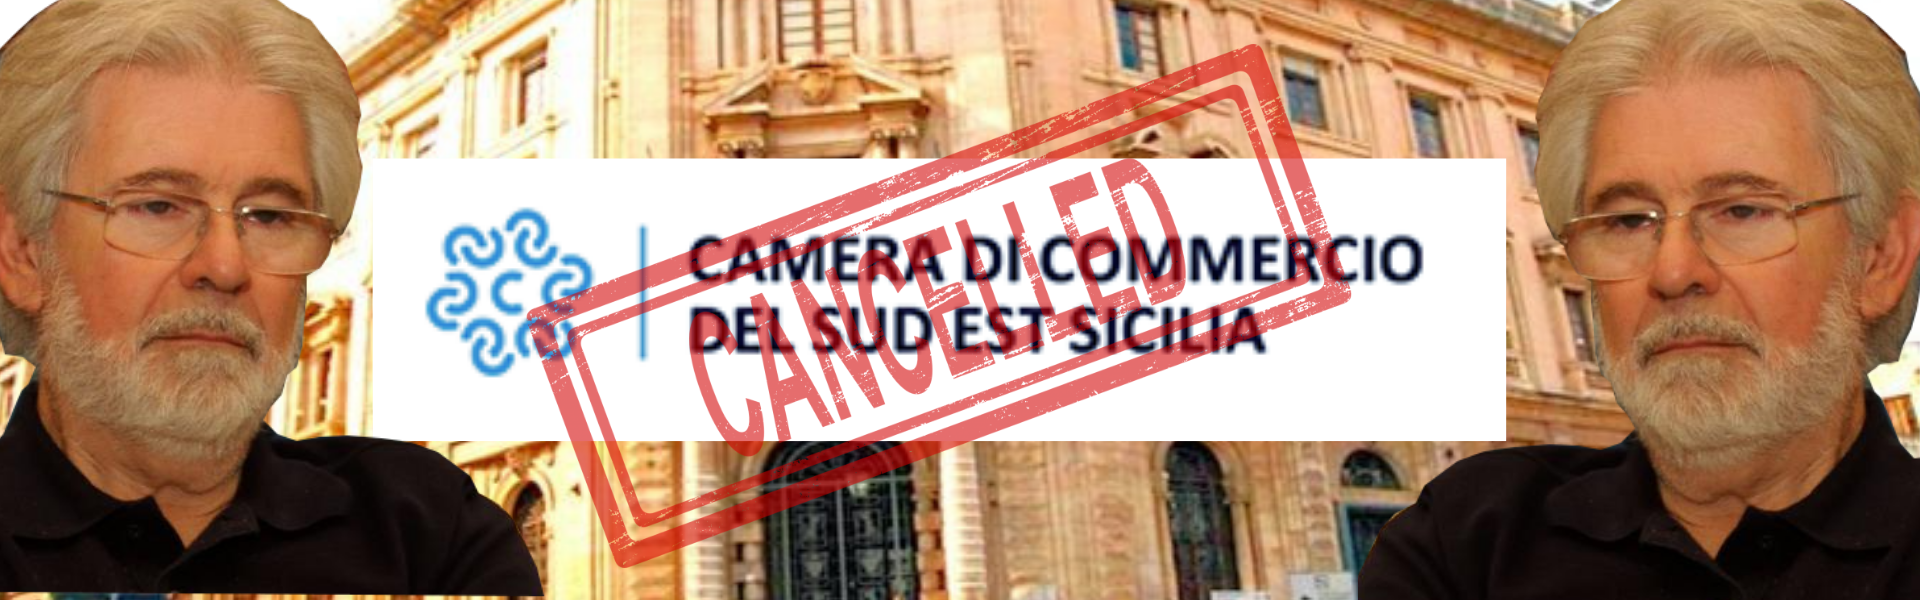 camcomcancelled-1627244623.png